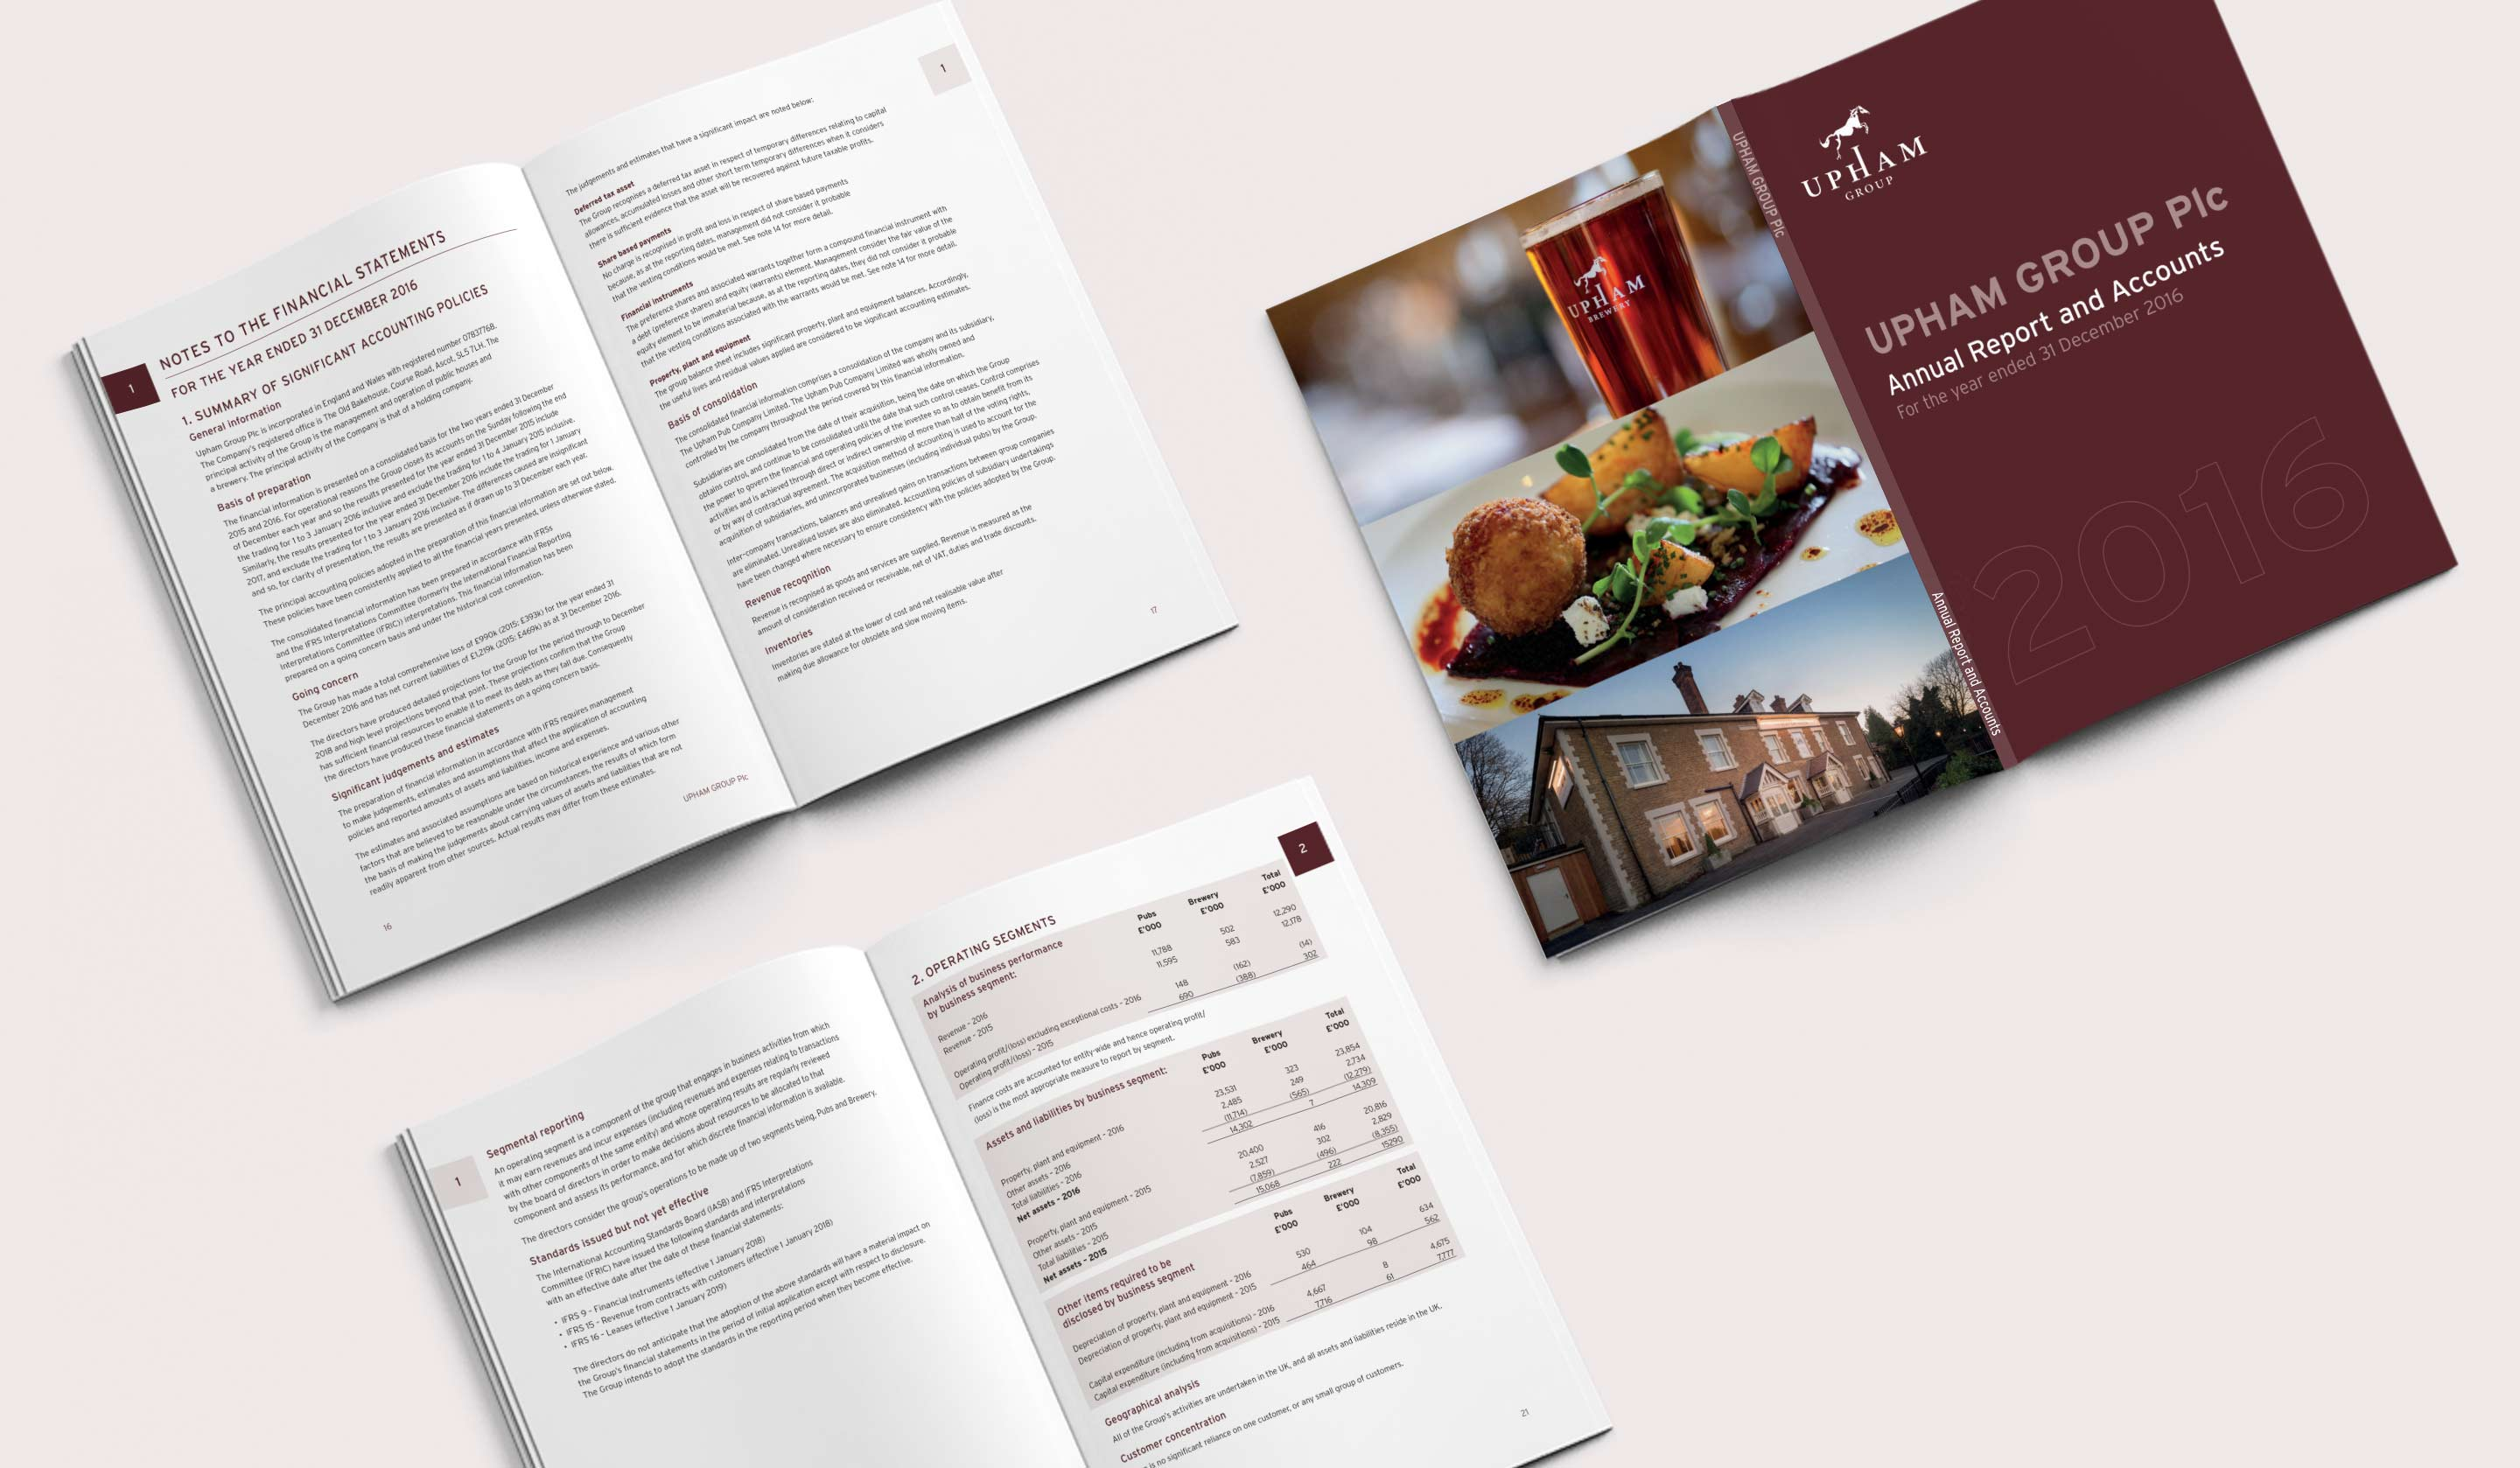 Upham Group annual report